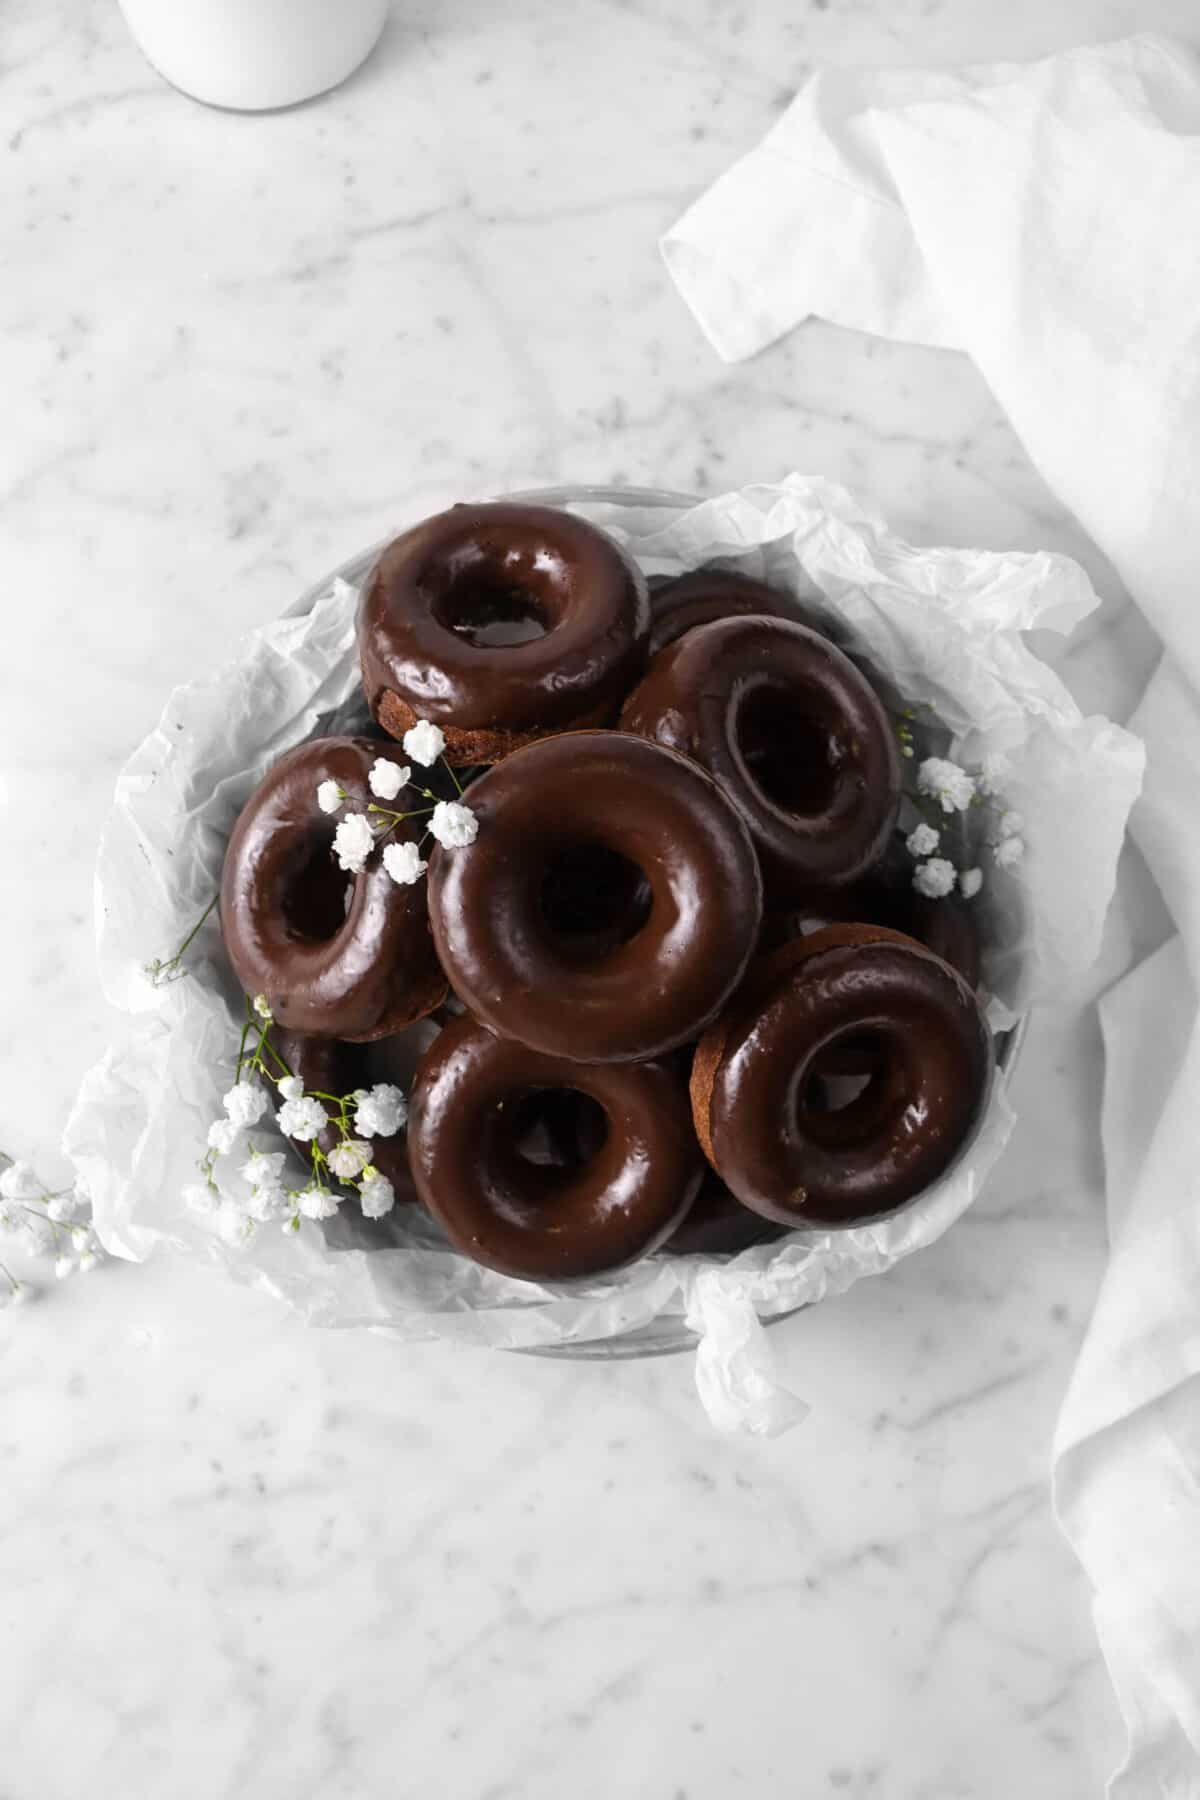 overhead shot of chocolate donuts with parchment paper, flowers, and a white napkin